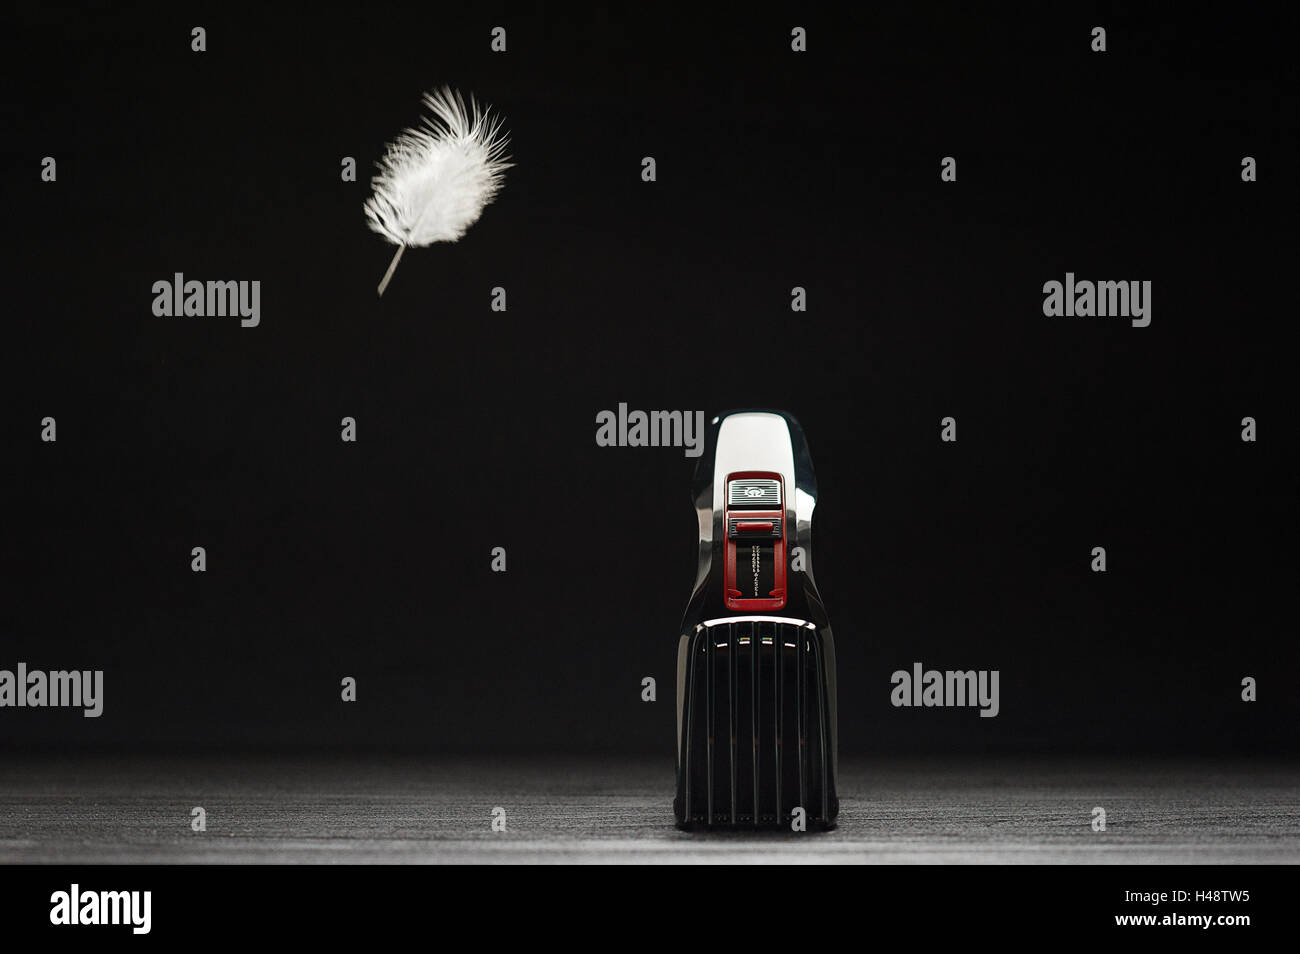 Hair trimmer in front of a black background - Stock Image